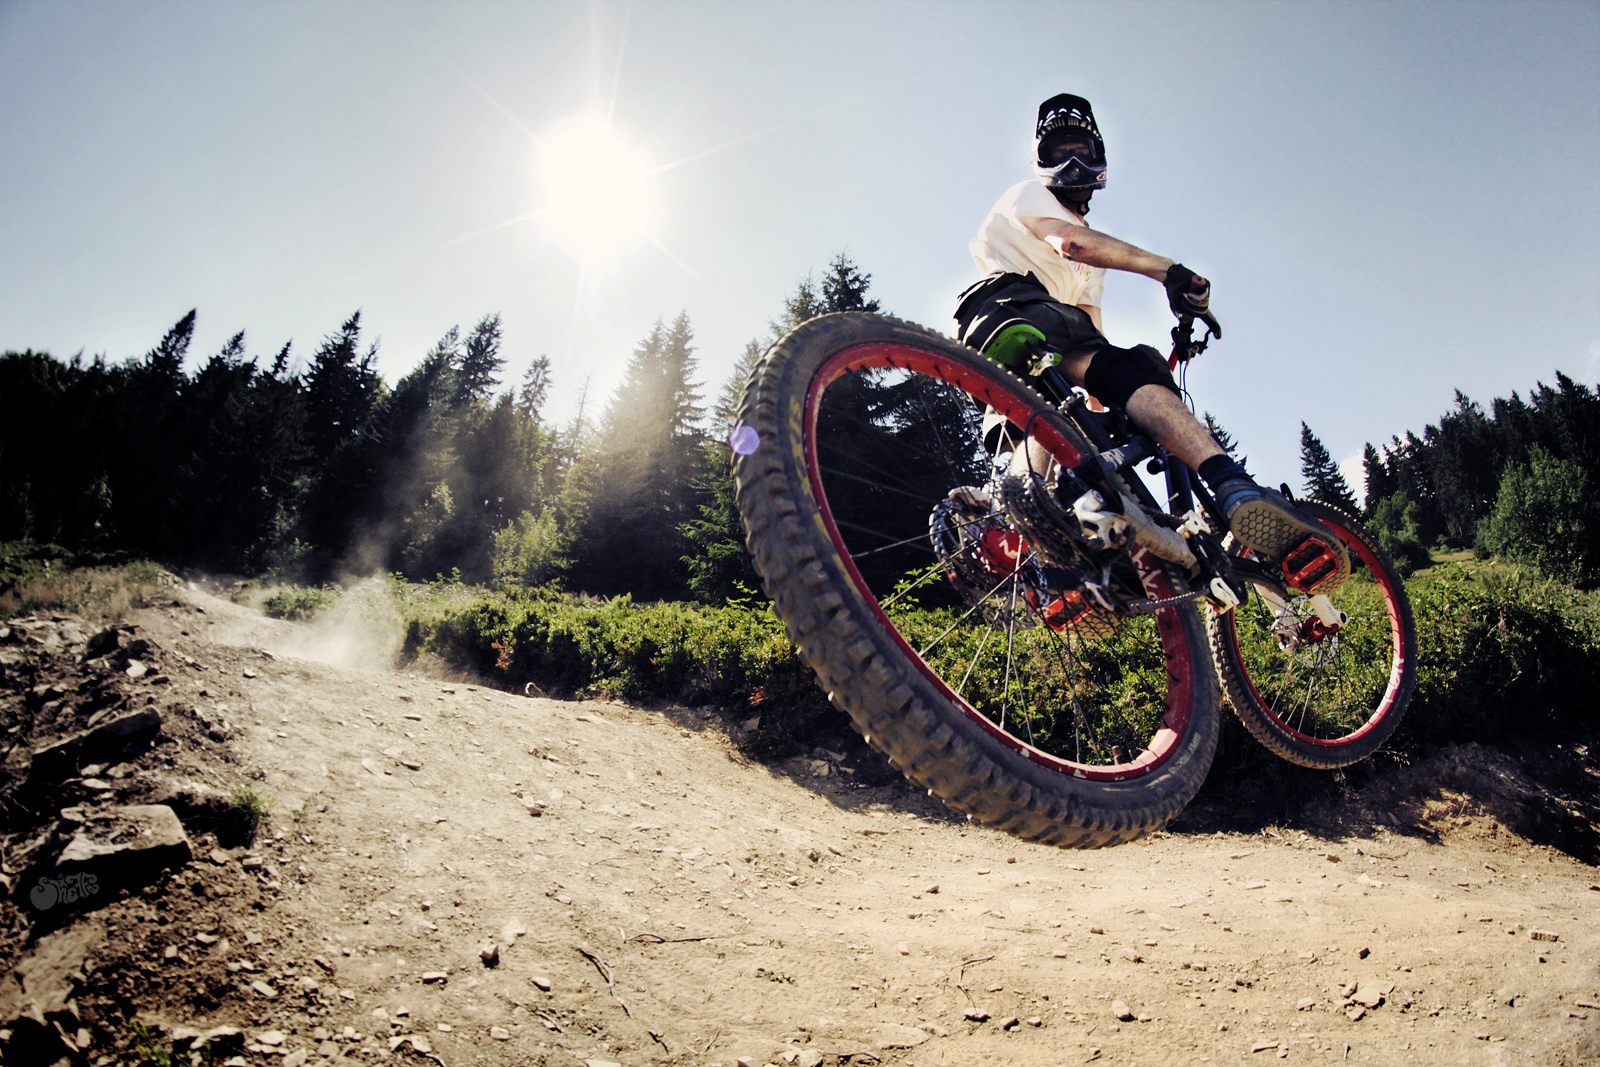 Bike Bicycle Jump Stop Action Sunlight race racing extreme wallpaper 1600x1067